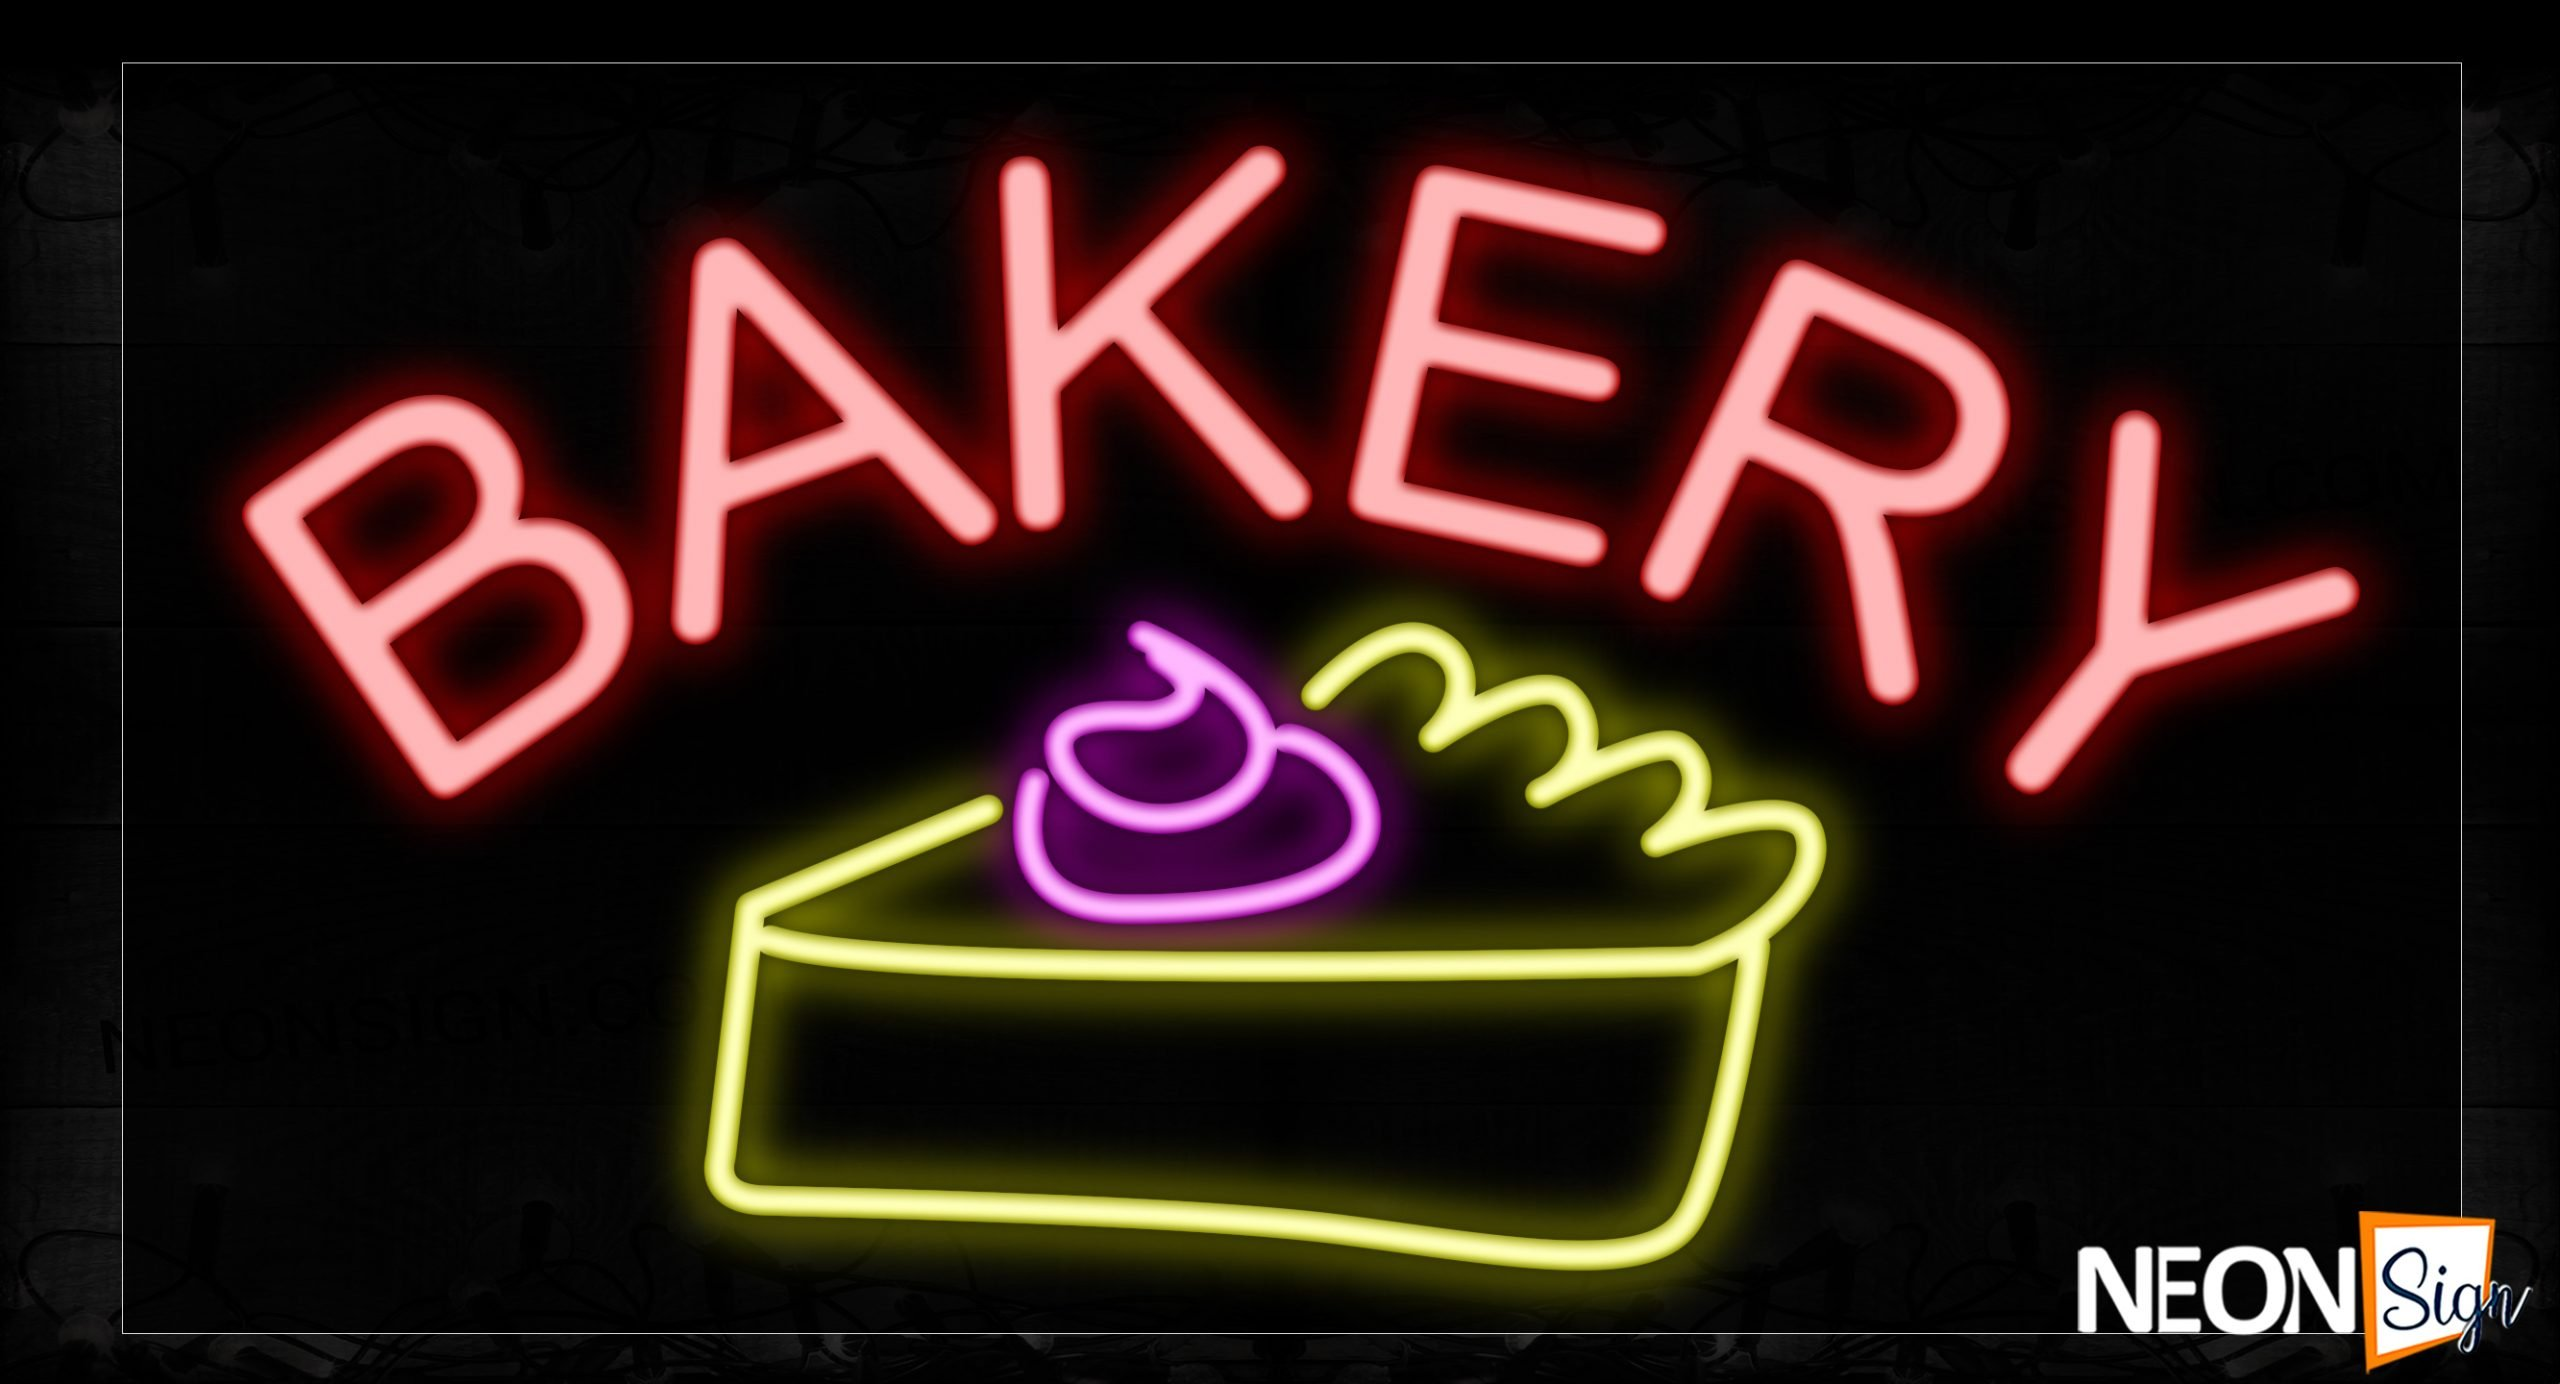 Image of 10666 Bakery In Red With Cake Logo Neon Signs_20x37 Black Backing